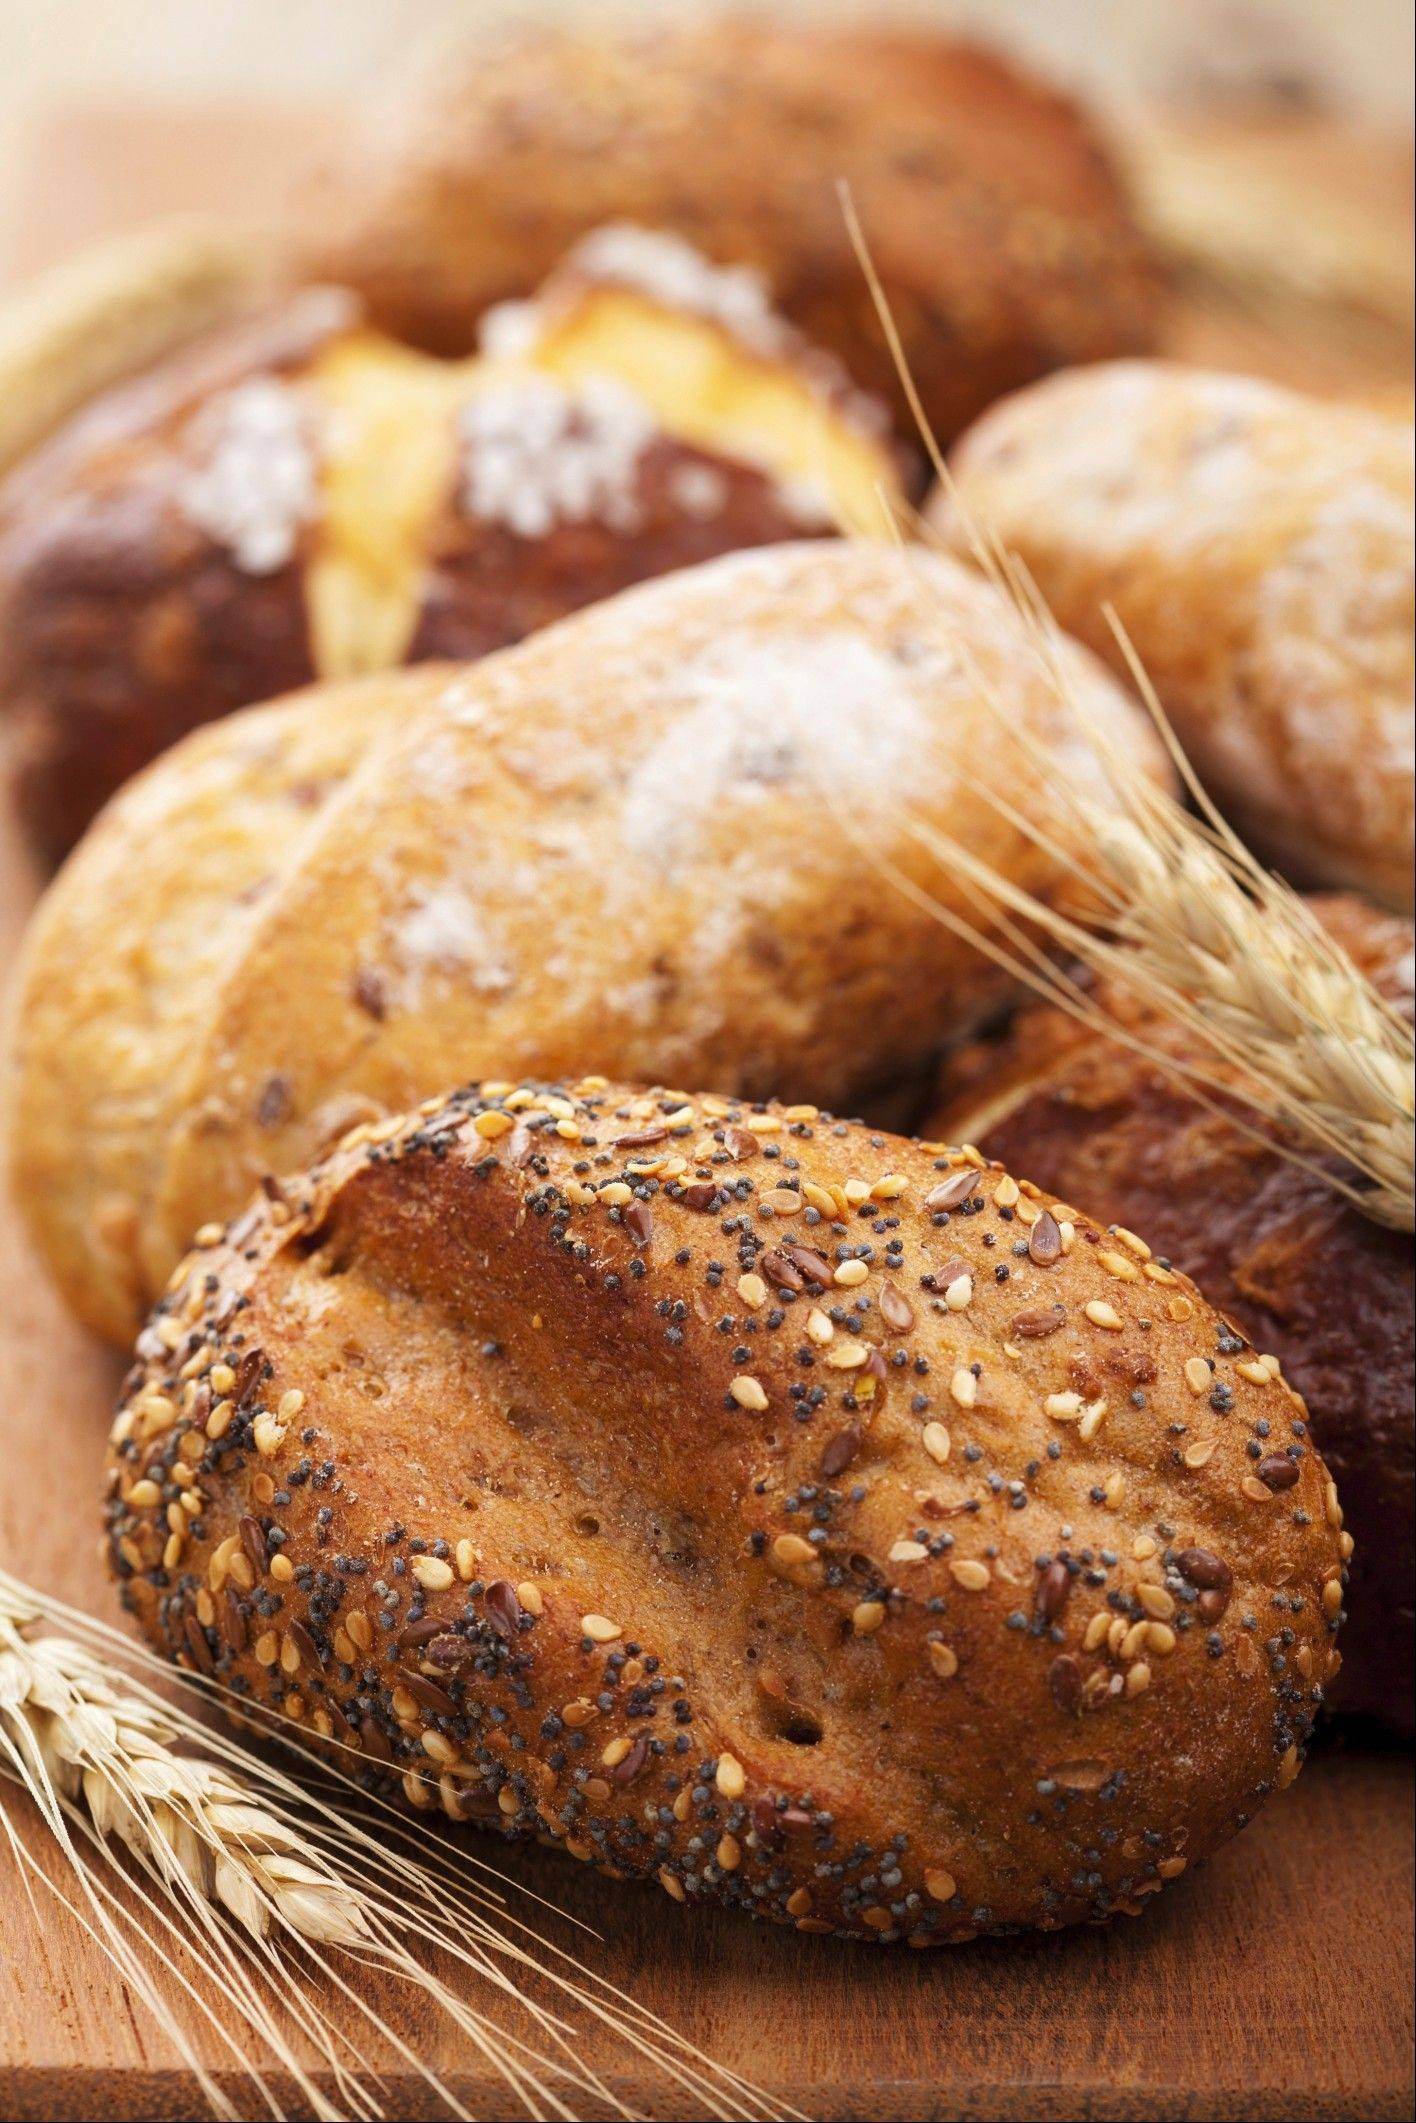 Whole-grain bread is a good choice when eating complex carbohydrates.